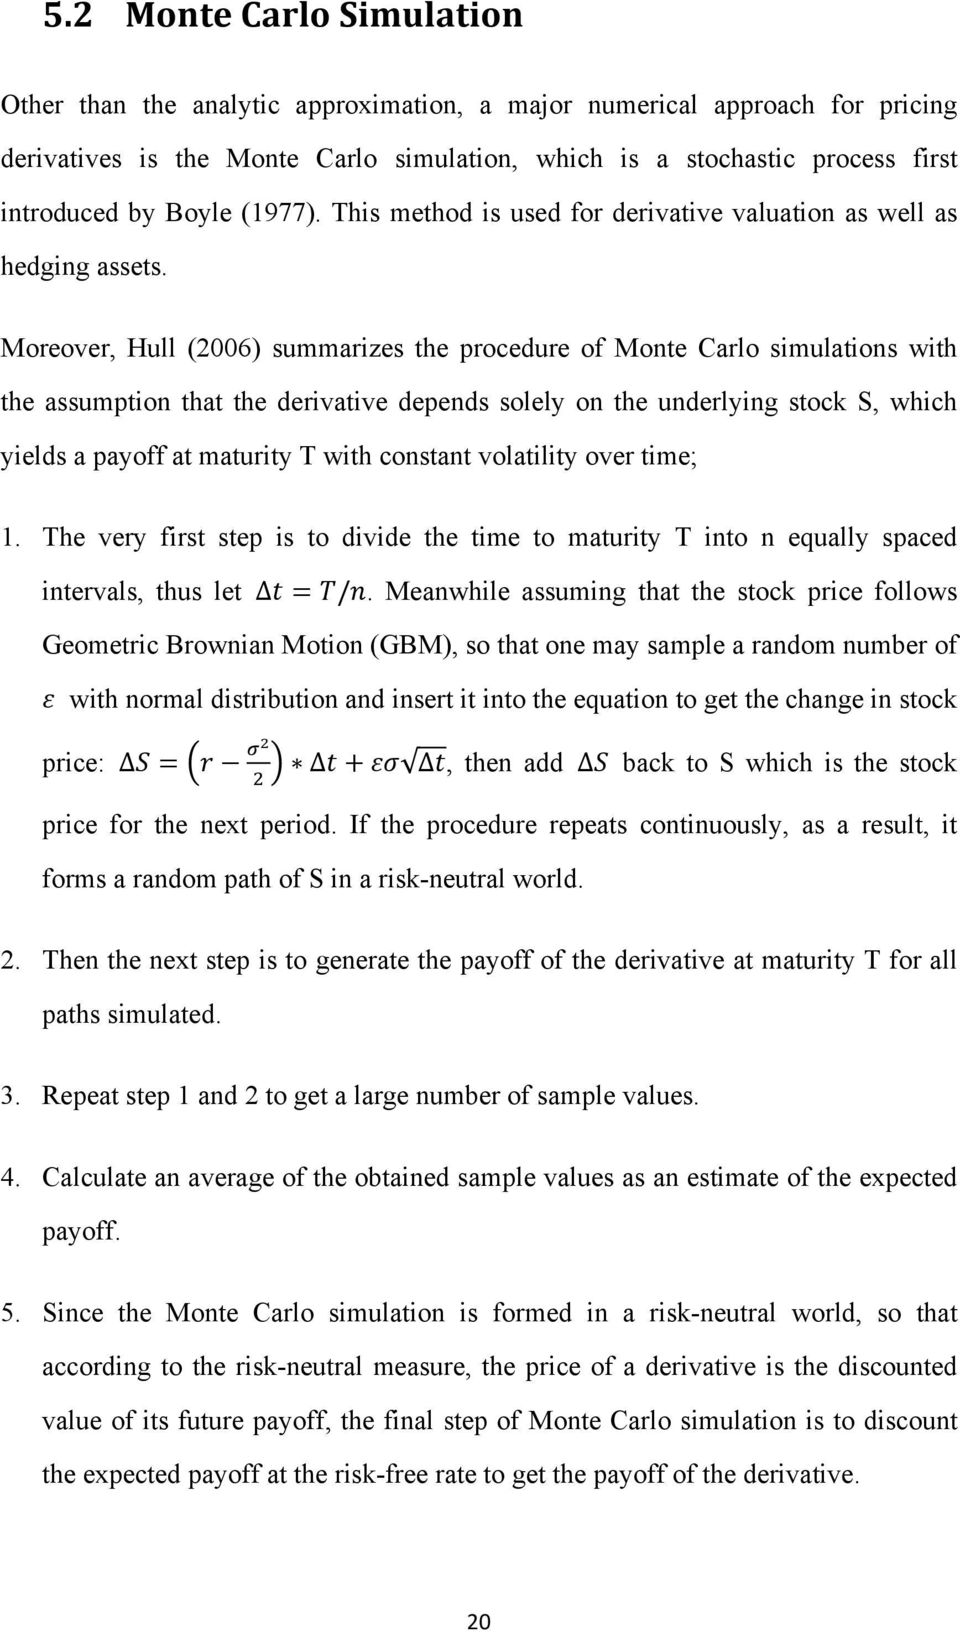 Moreover, Hull (2006) summarizes the procedure of Monte Carlo simulations with the assumption that the derivative depends solely on the underlying stock S, which yields a payoff at maturity T with